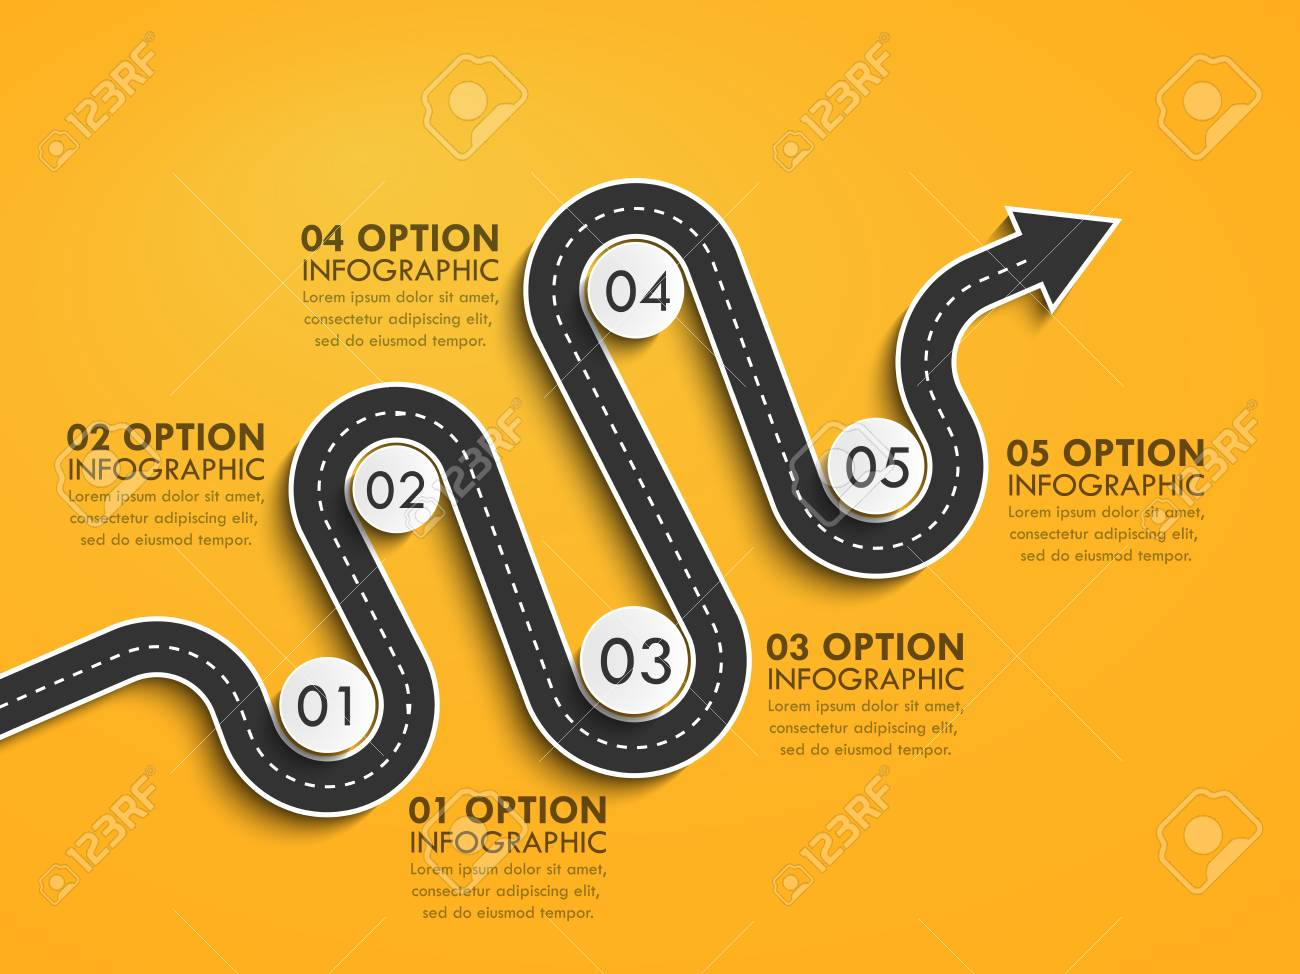 Road way location infographic template with a phased structure. Winding road timeline. Stylish Serpentine in the form of arrows. - 105228323